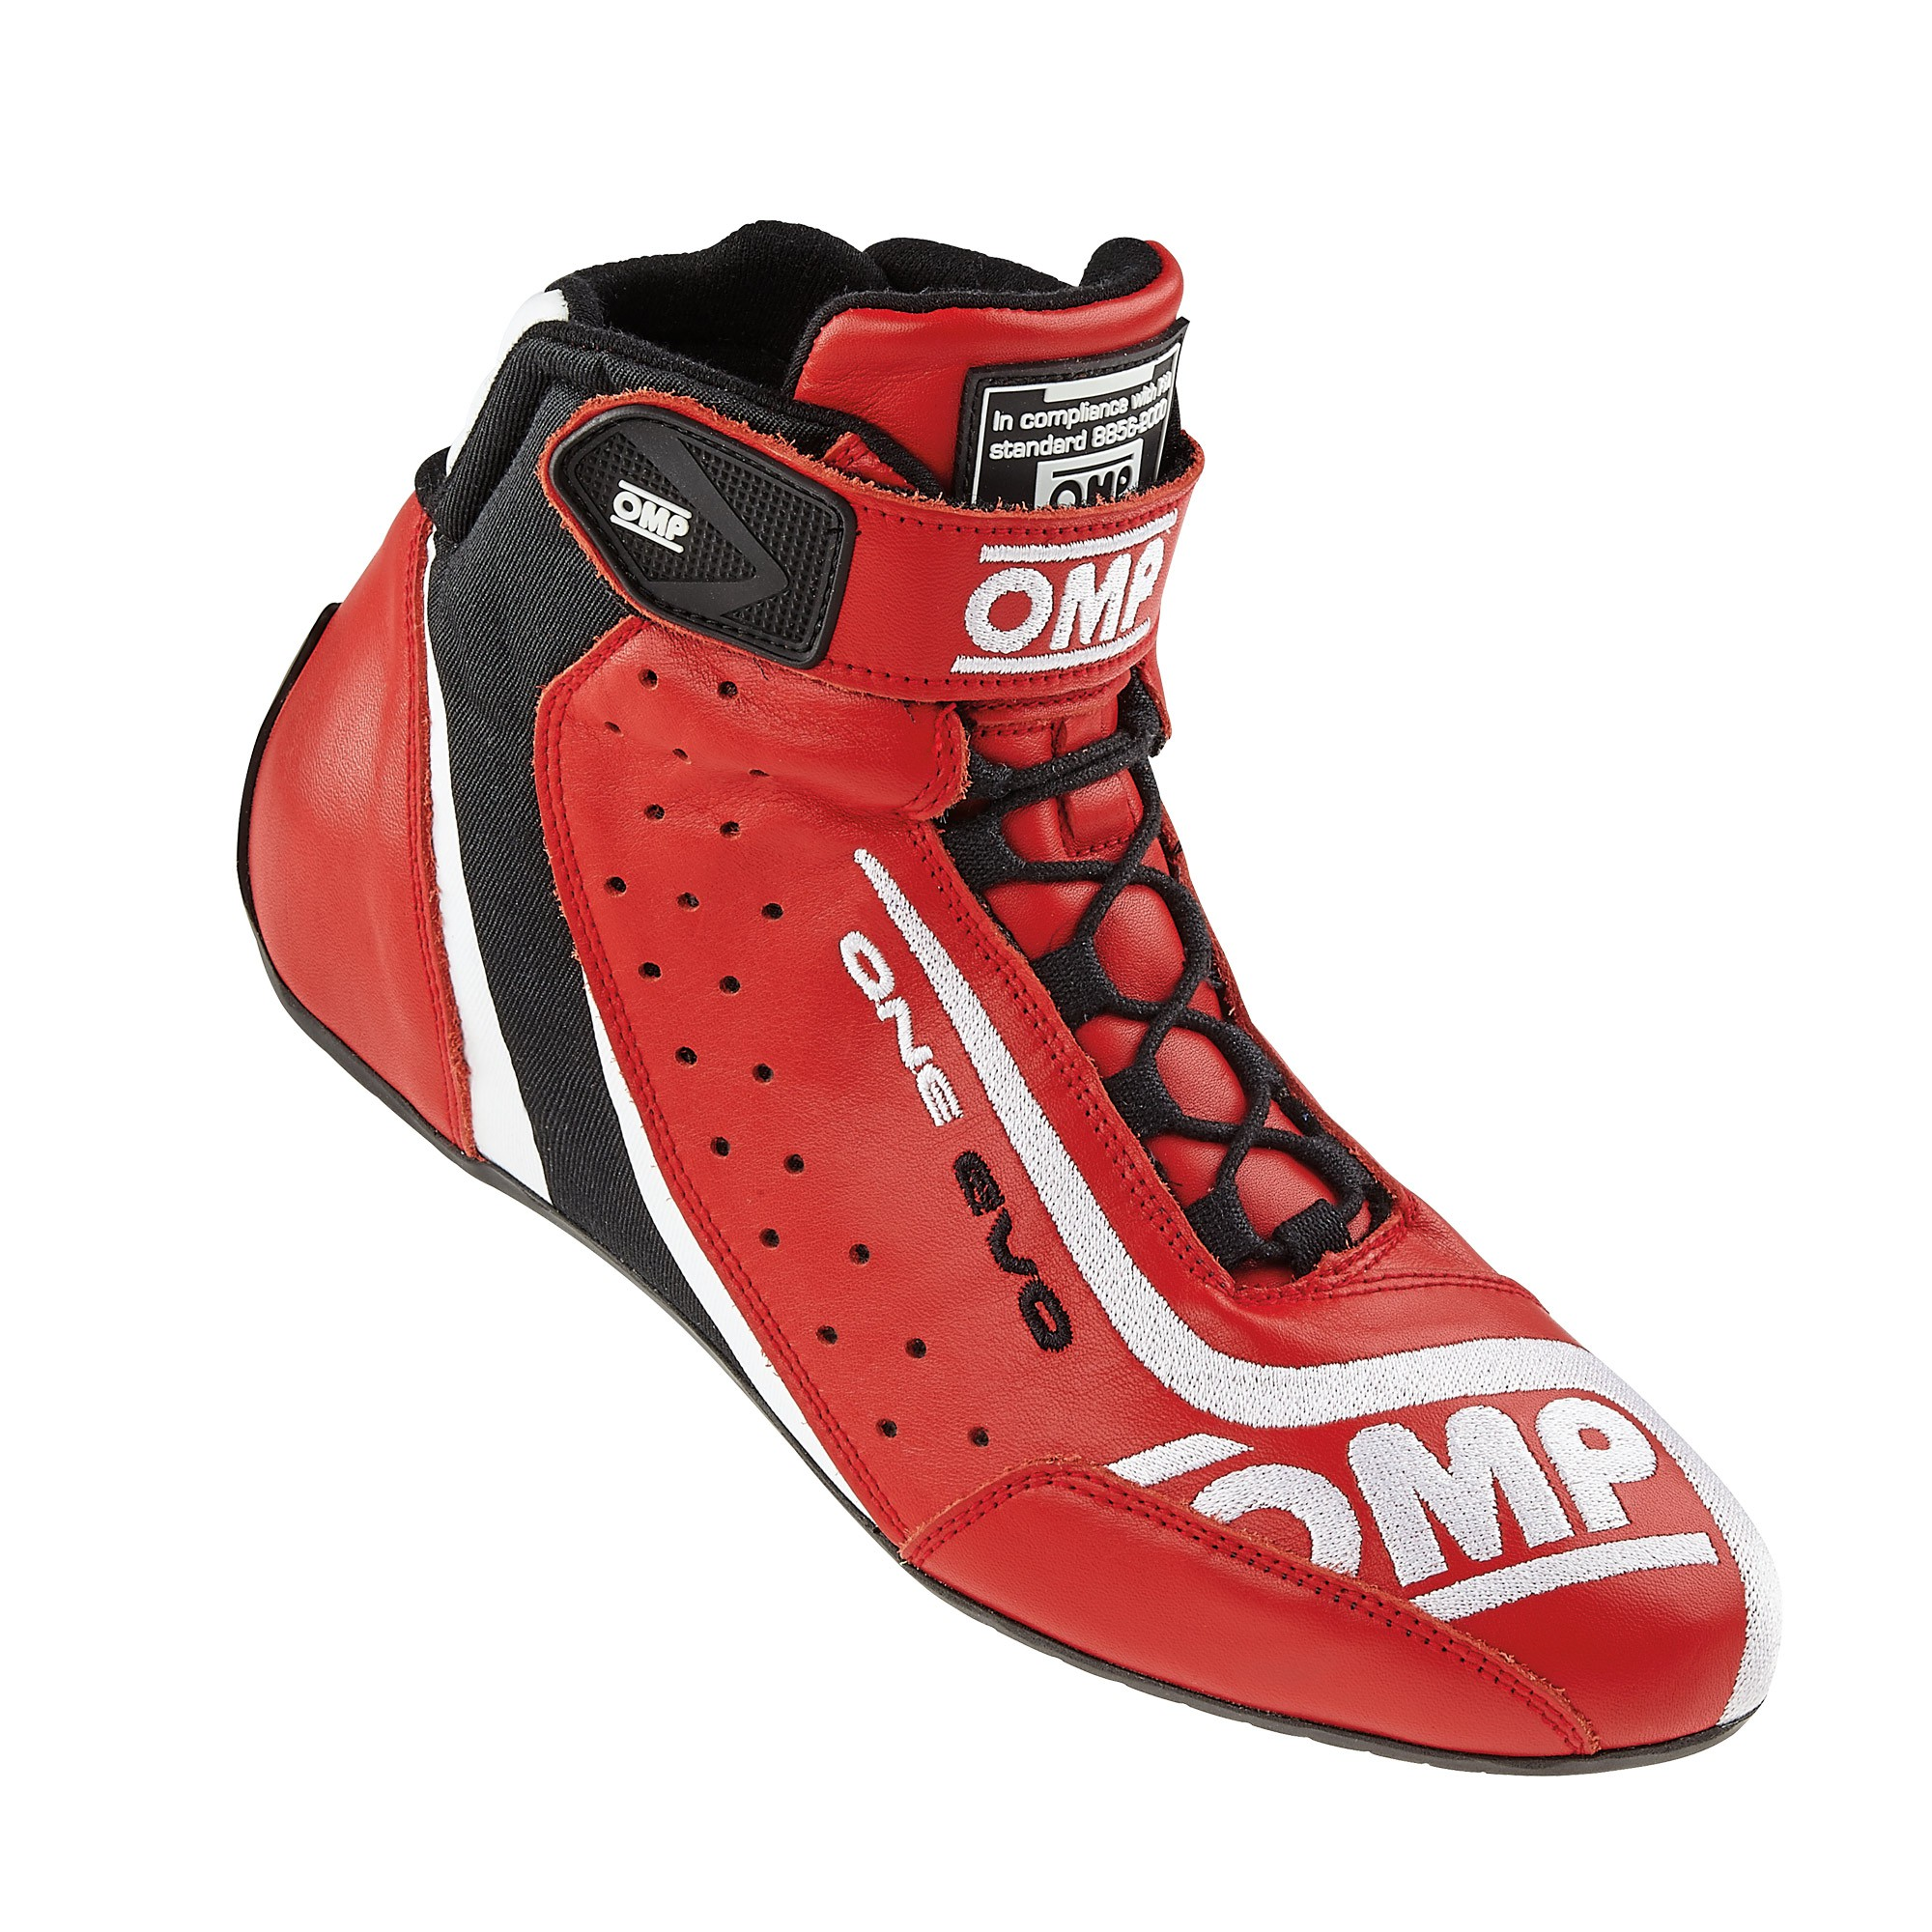 One Evo Shoes Racing Shoes Omp Racing